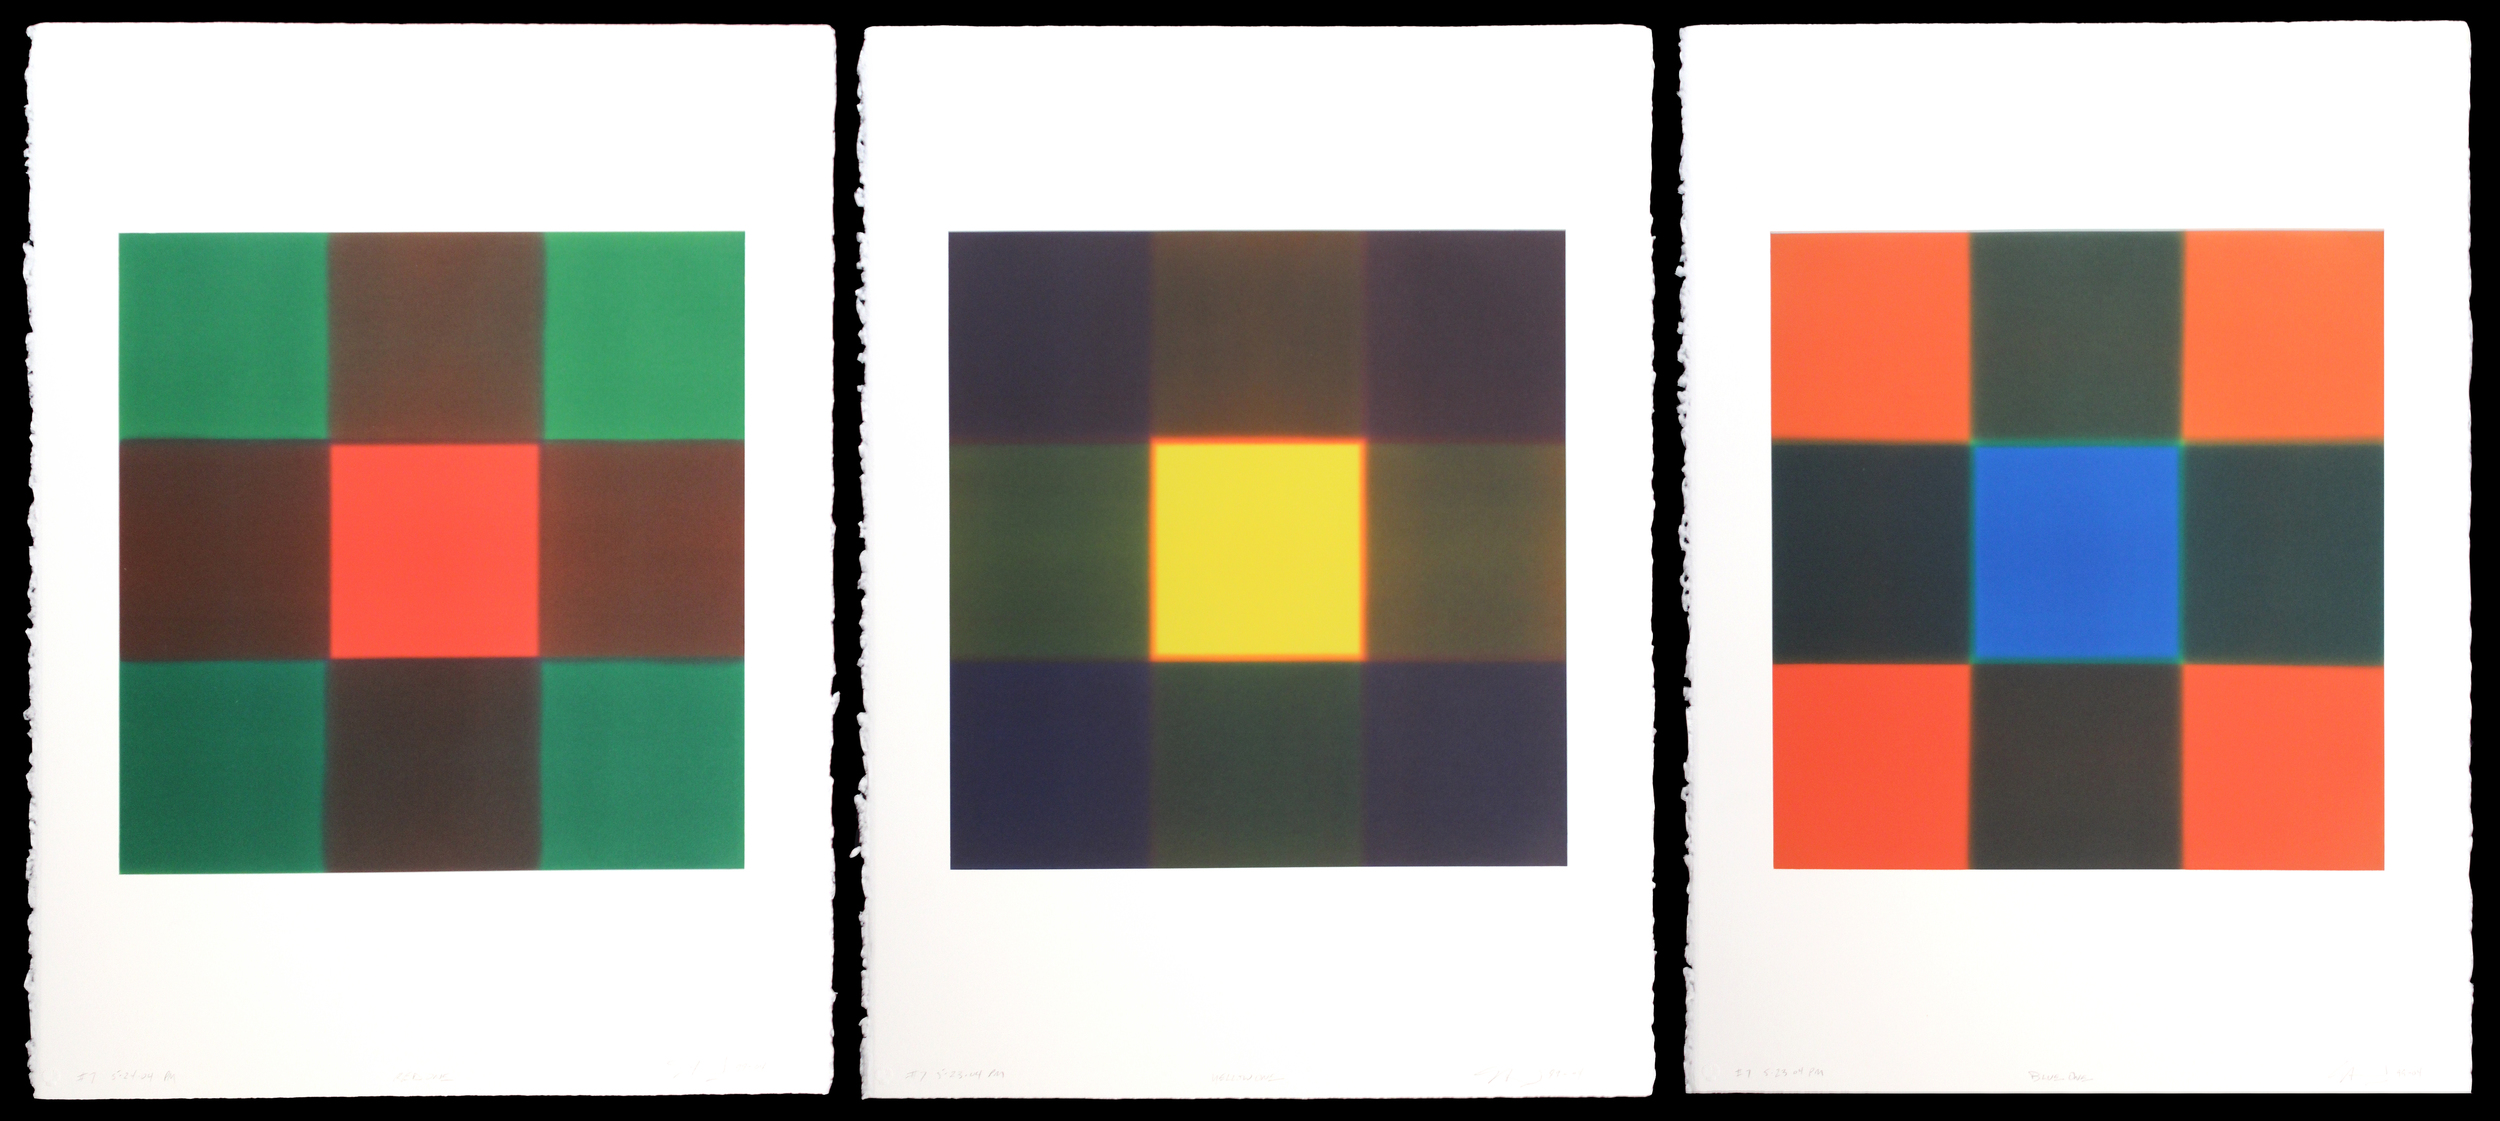 One Series (Red One, Yellow One, Blue One)